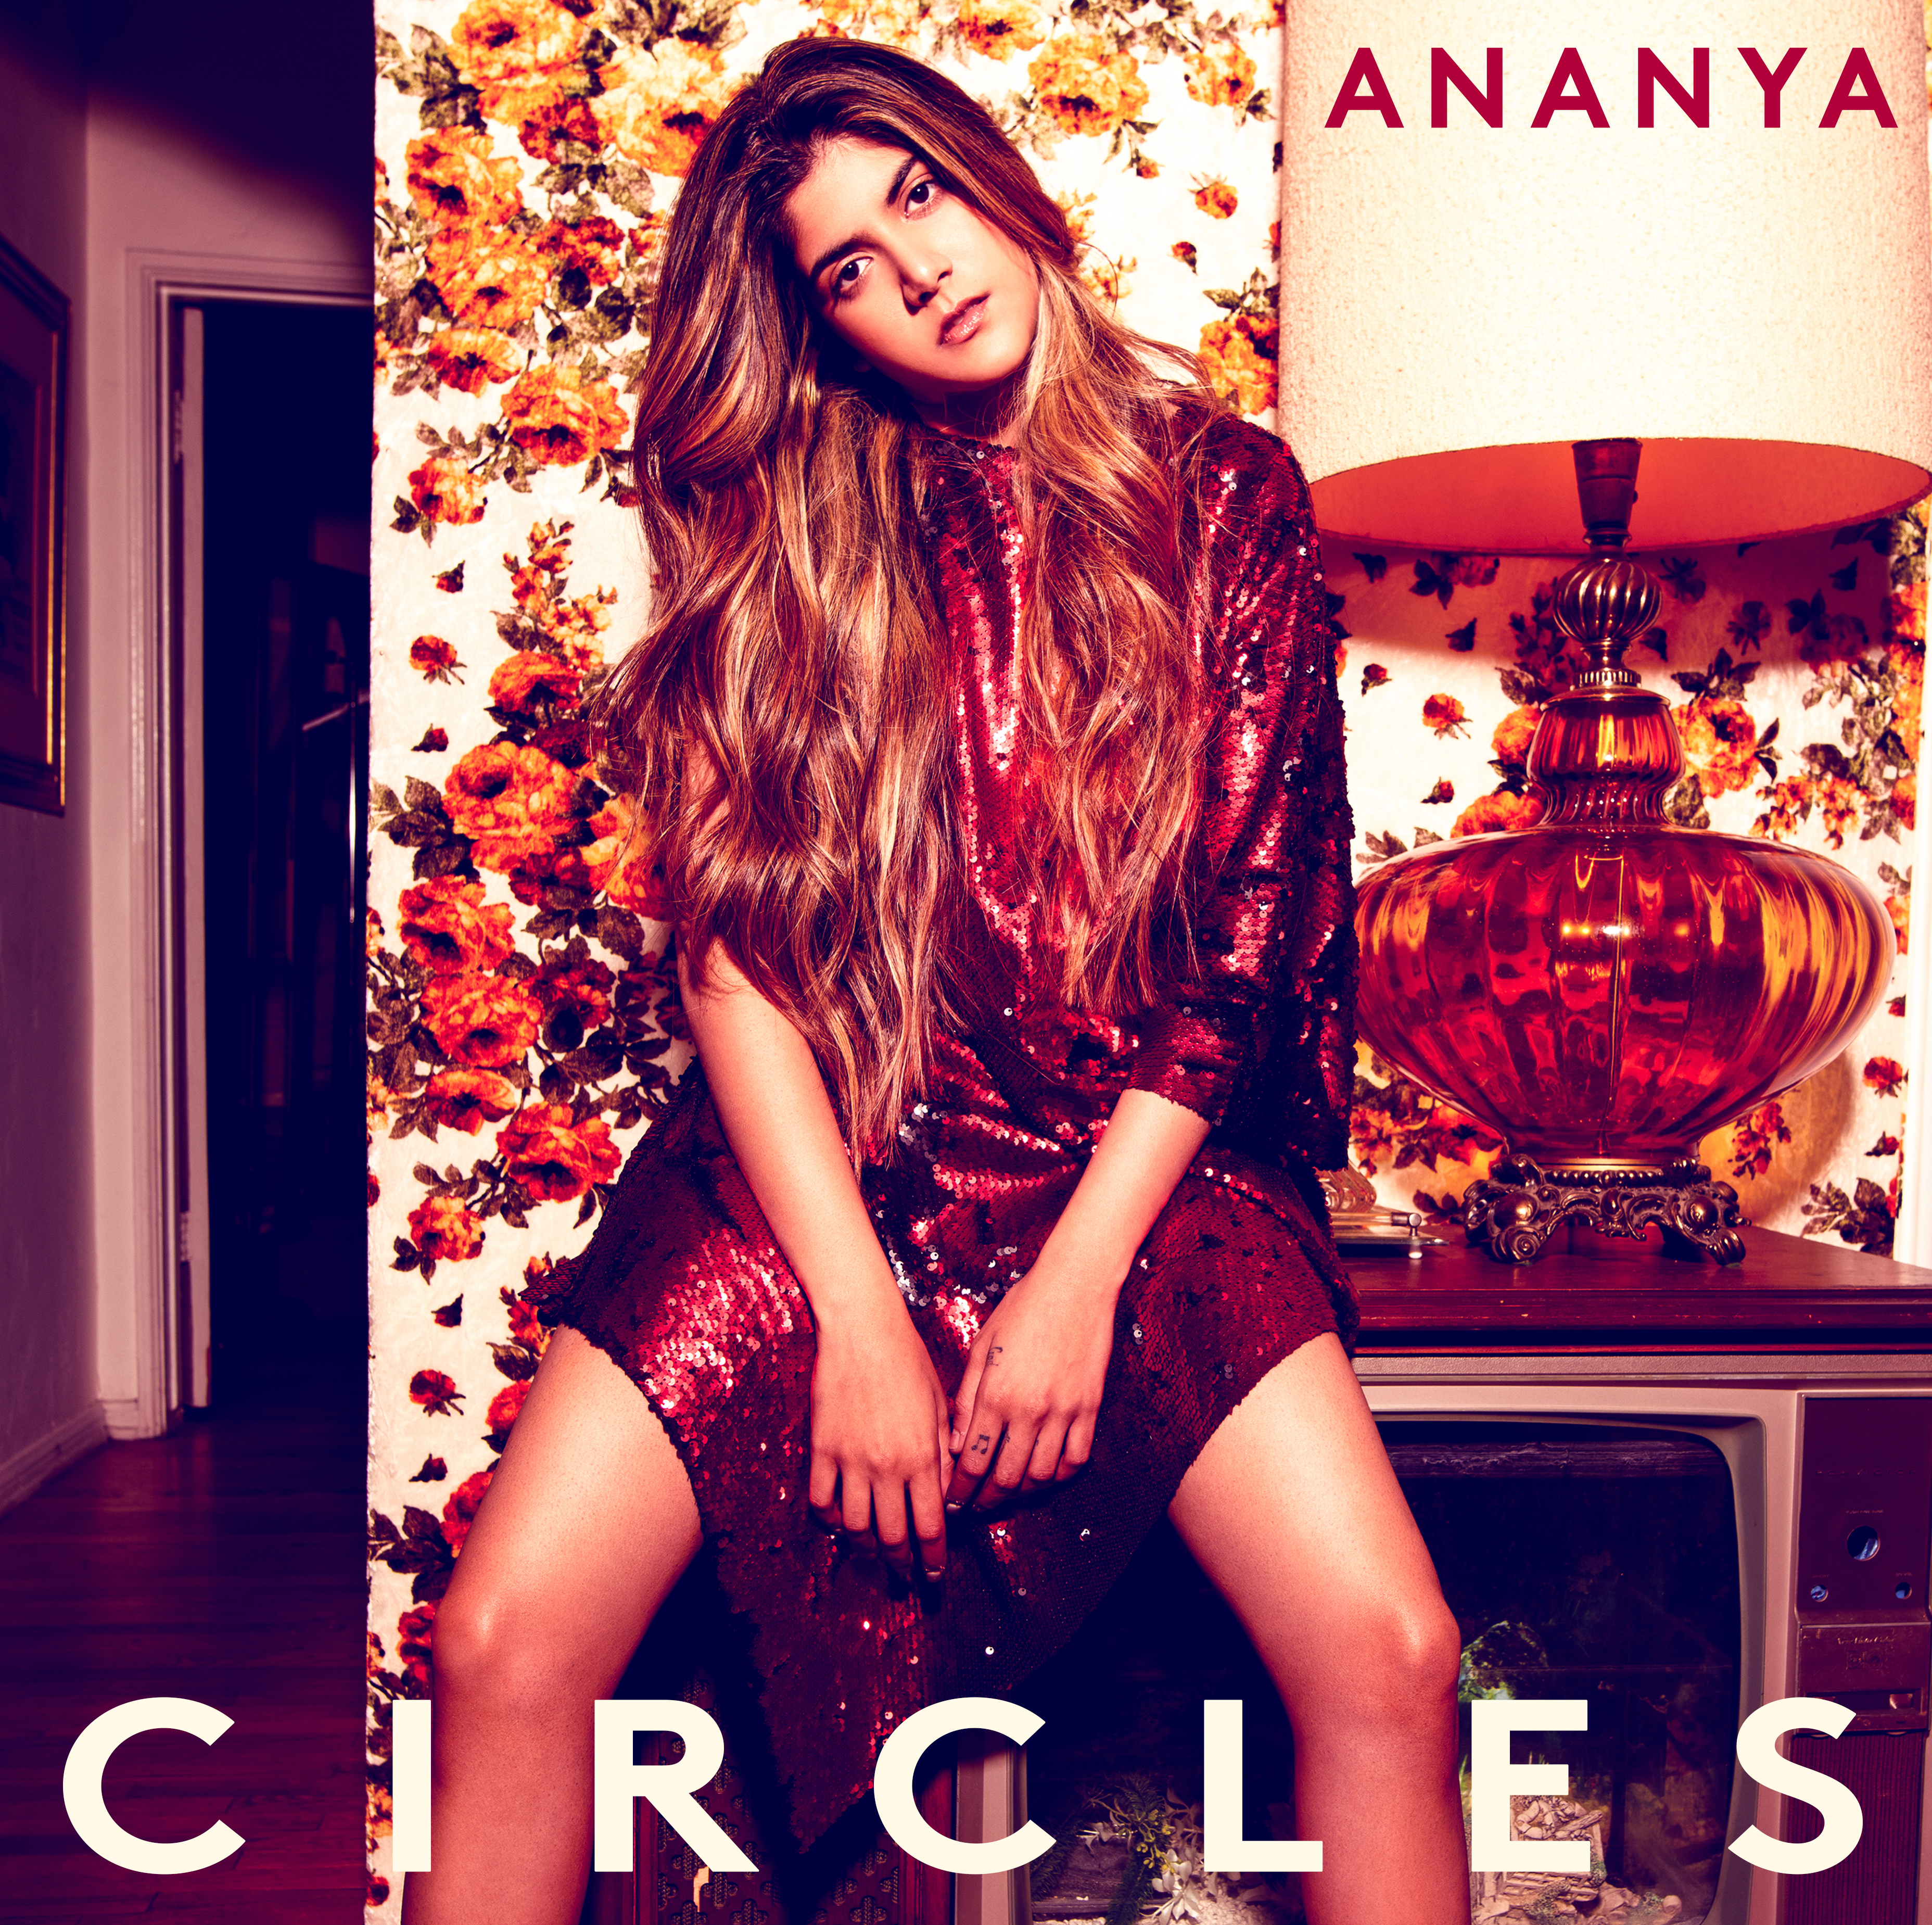 Cover art for Ananya's latest single, 'Circles'.